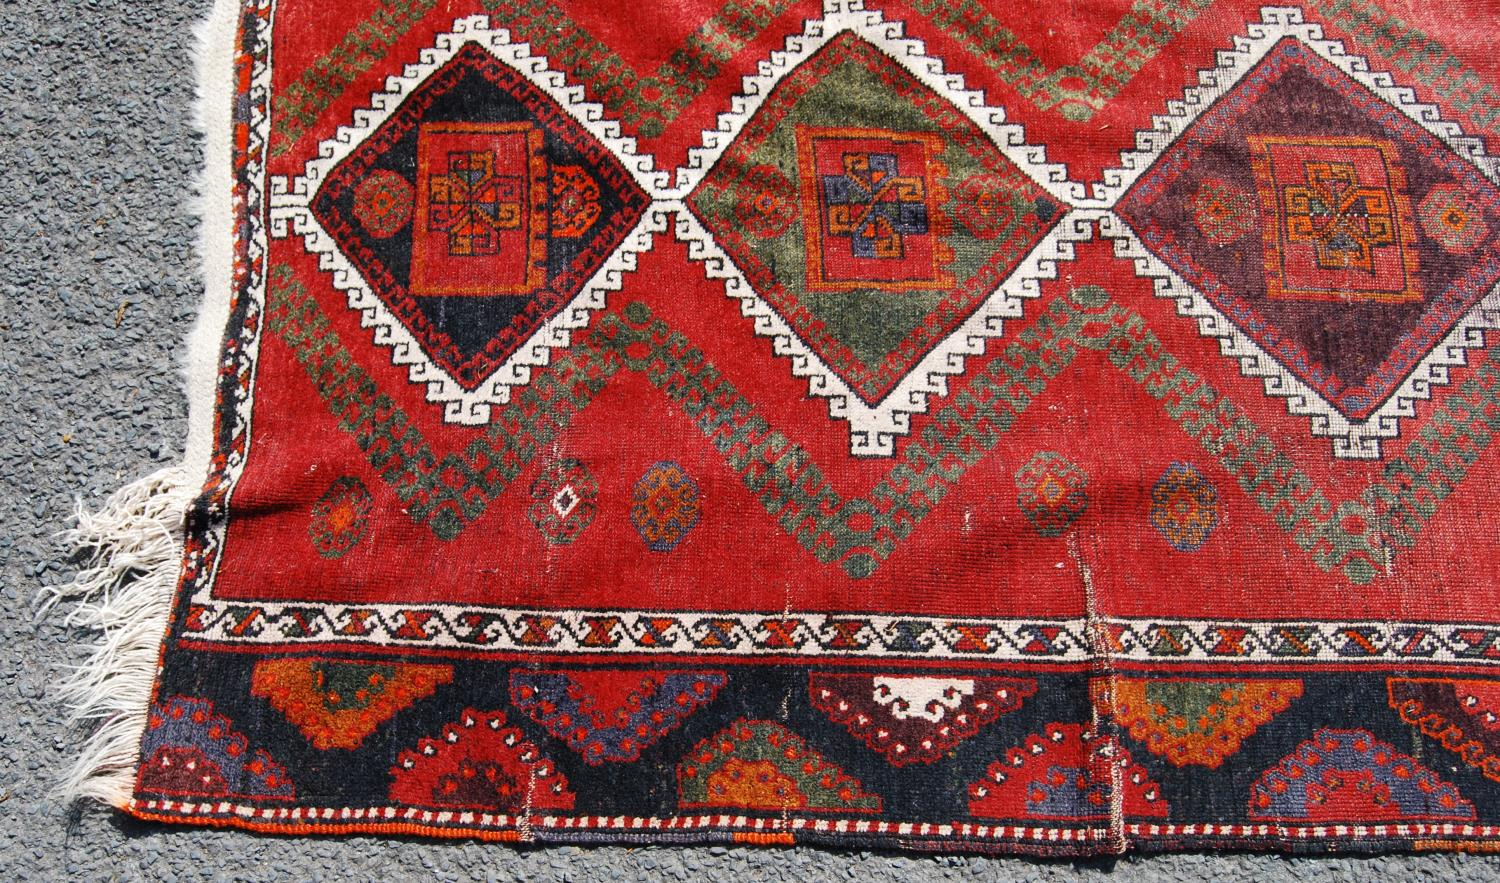 Persian long rug, the six diamonds with panel and rosettes over red ground and border, 330cm x - Image 2 of 4